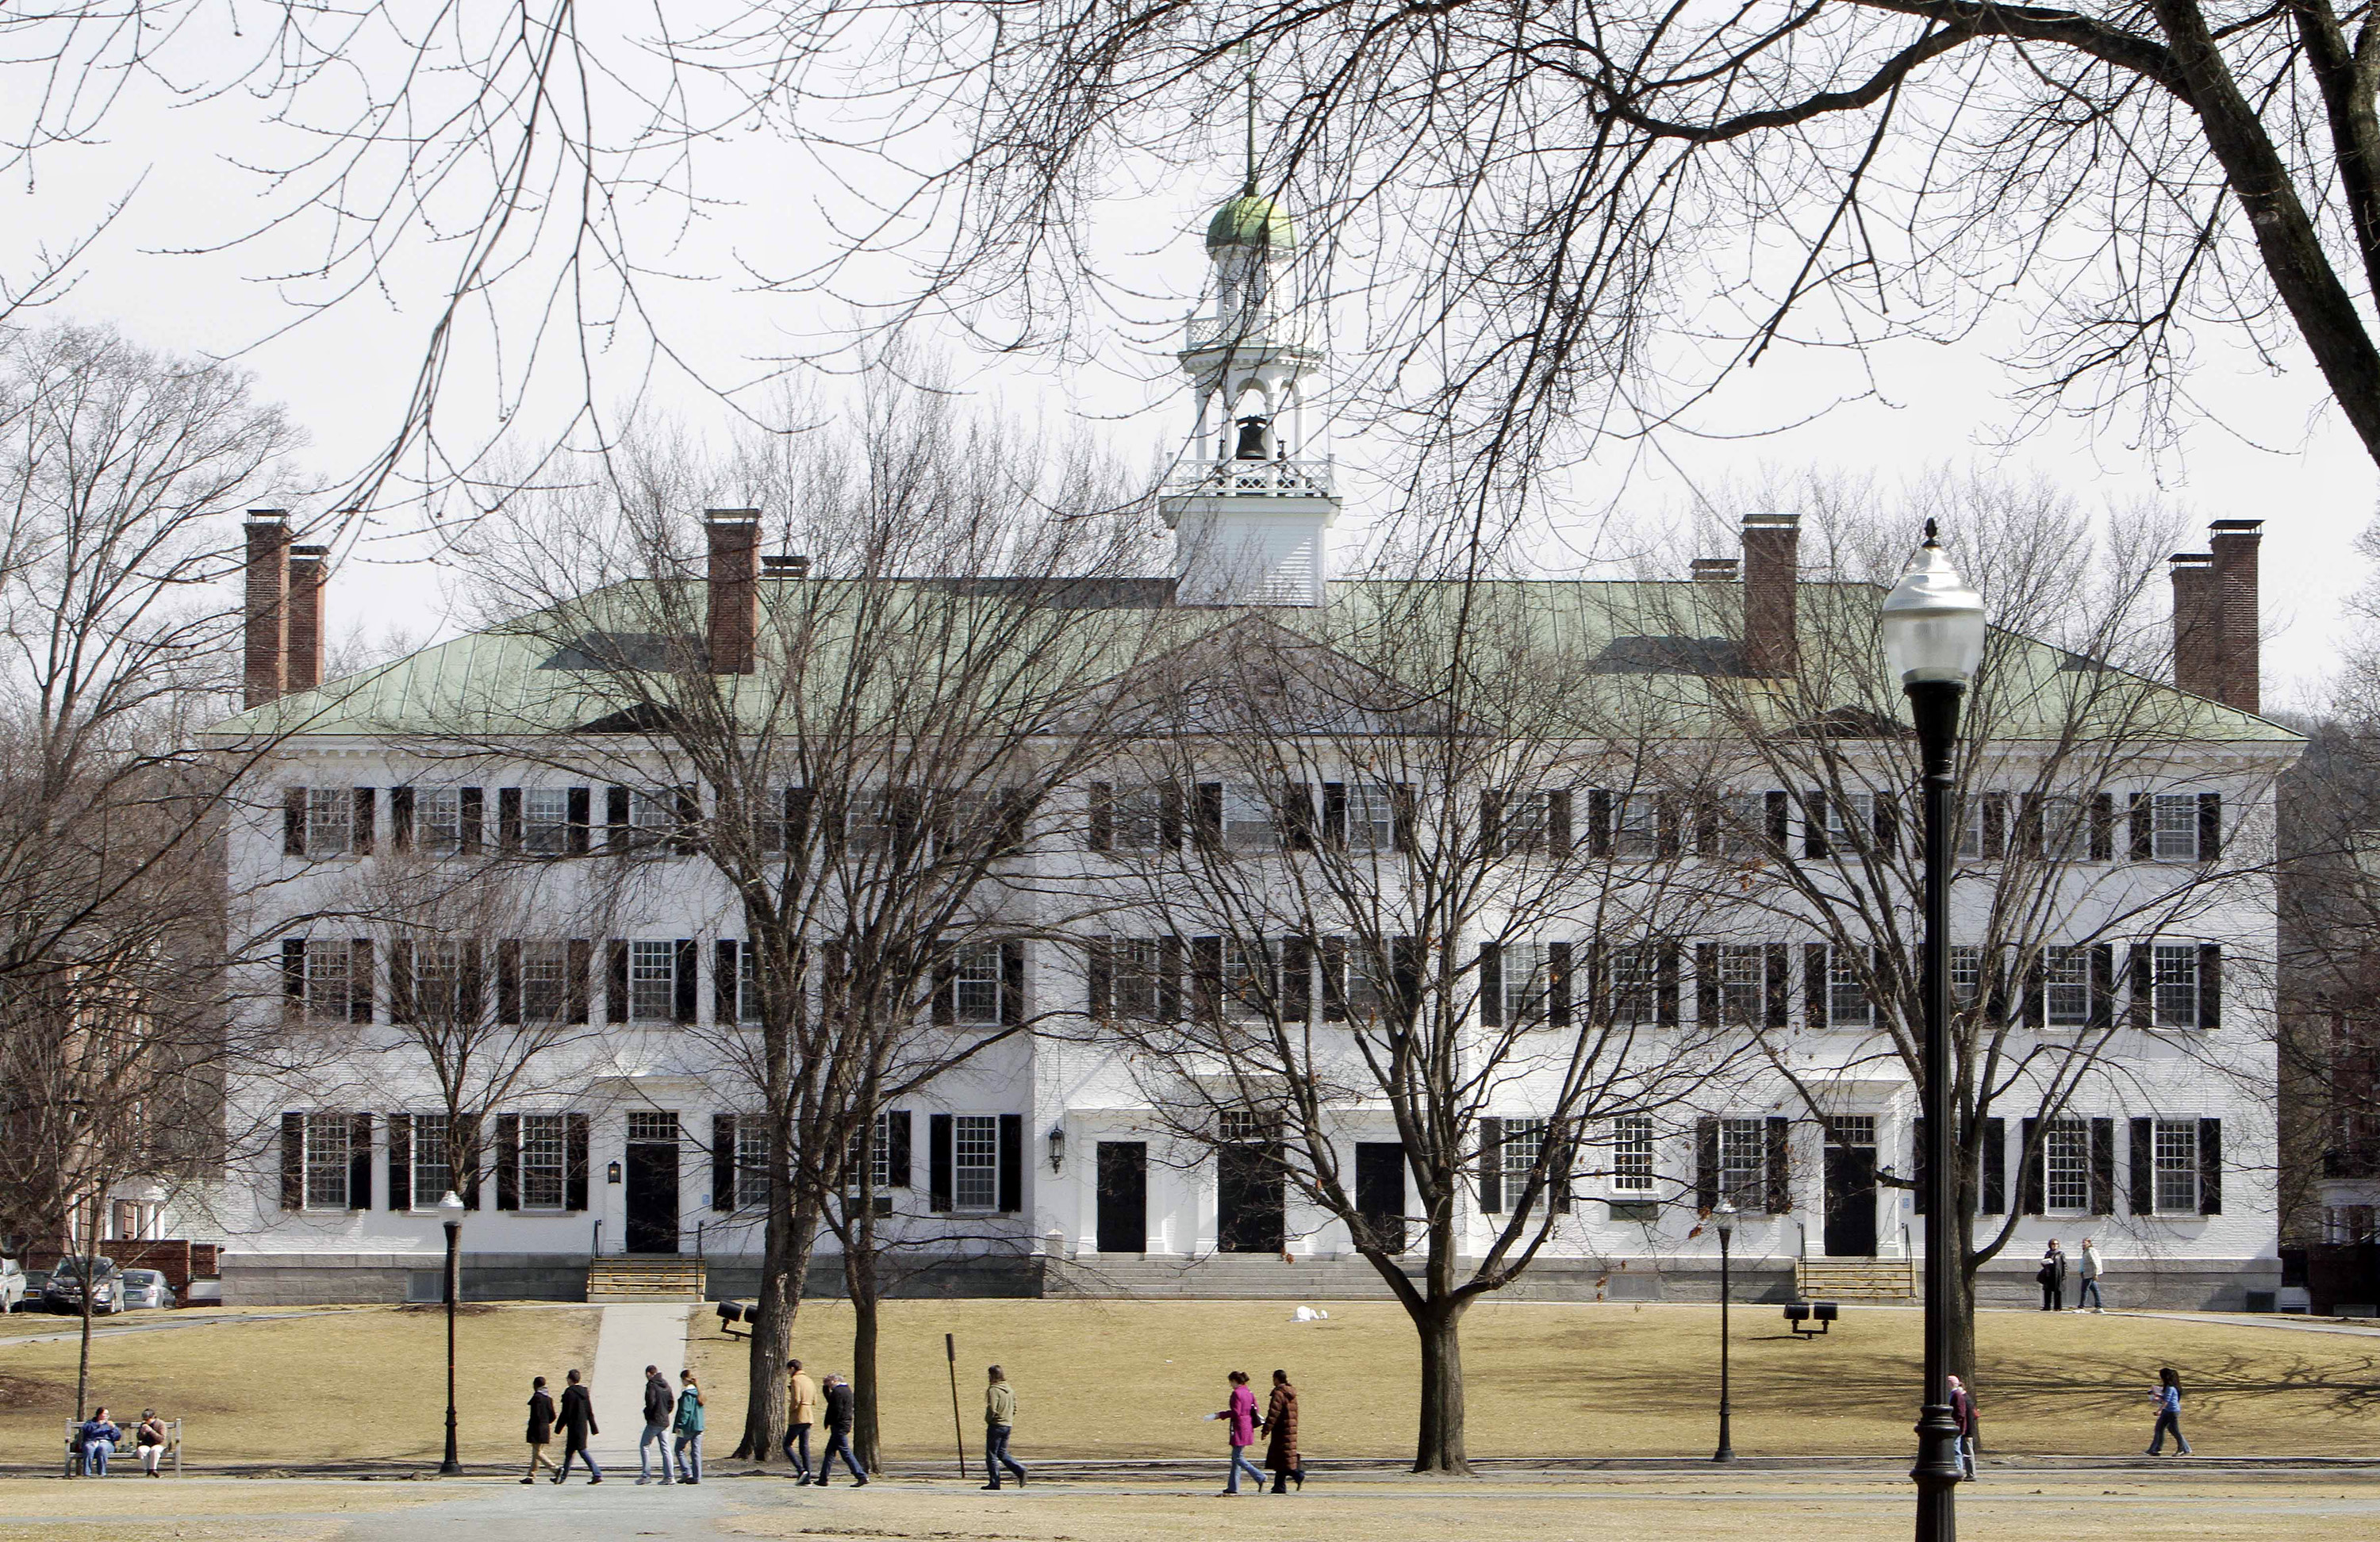 Students walk across the Dartmouth College campus green in Hanover, N.H., on March 12, 2012. The school is banning hard alcohol on campus.